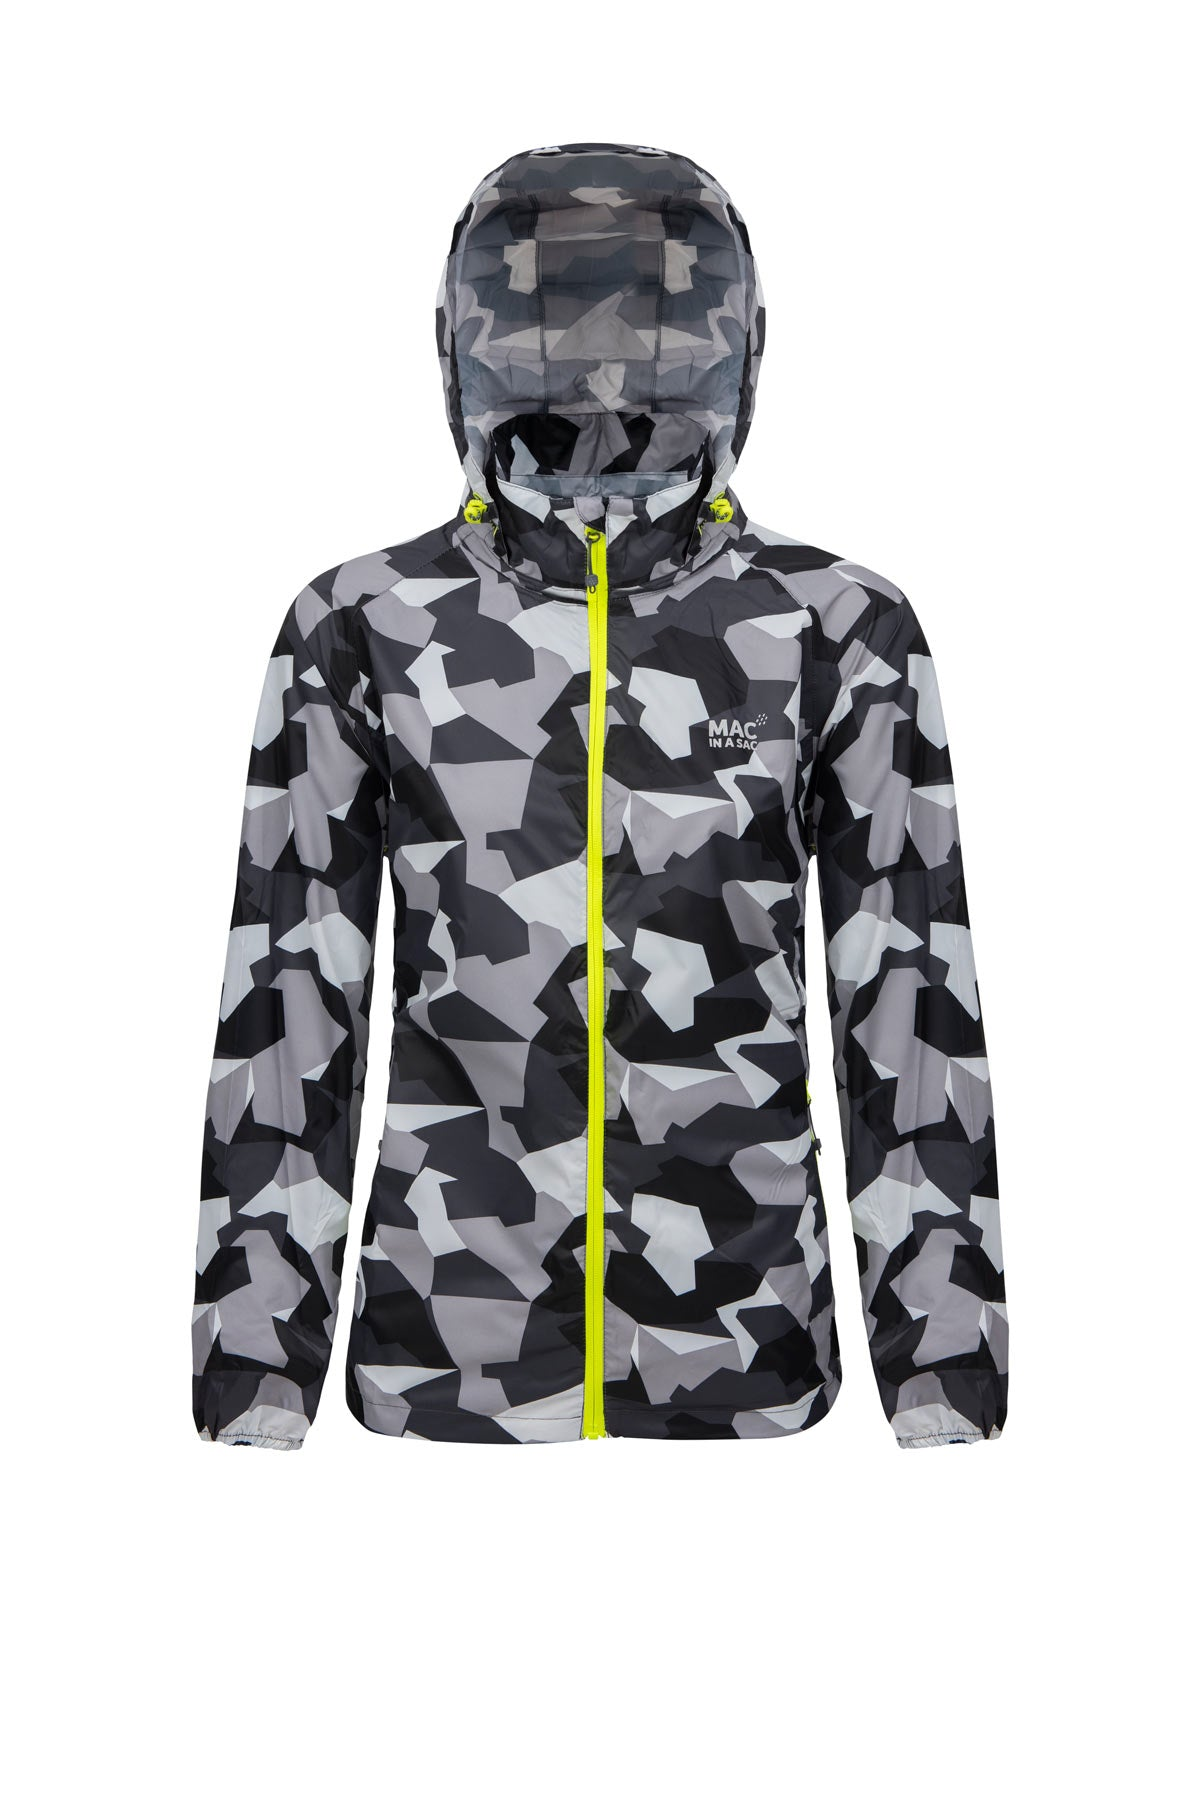 Origin Jacket - White Camo Edition